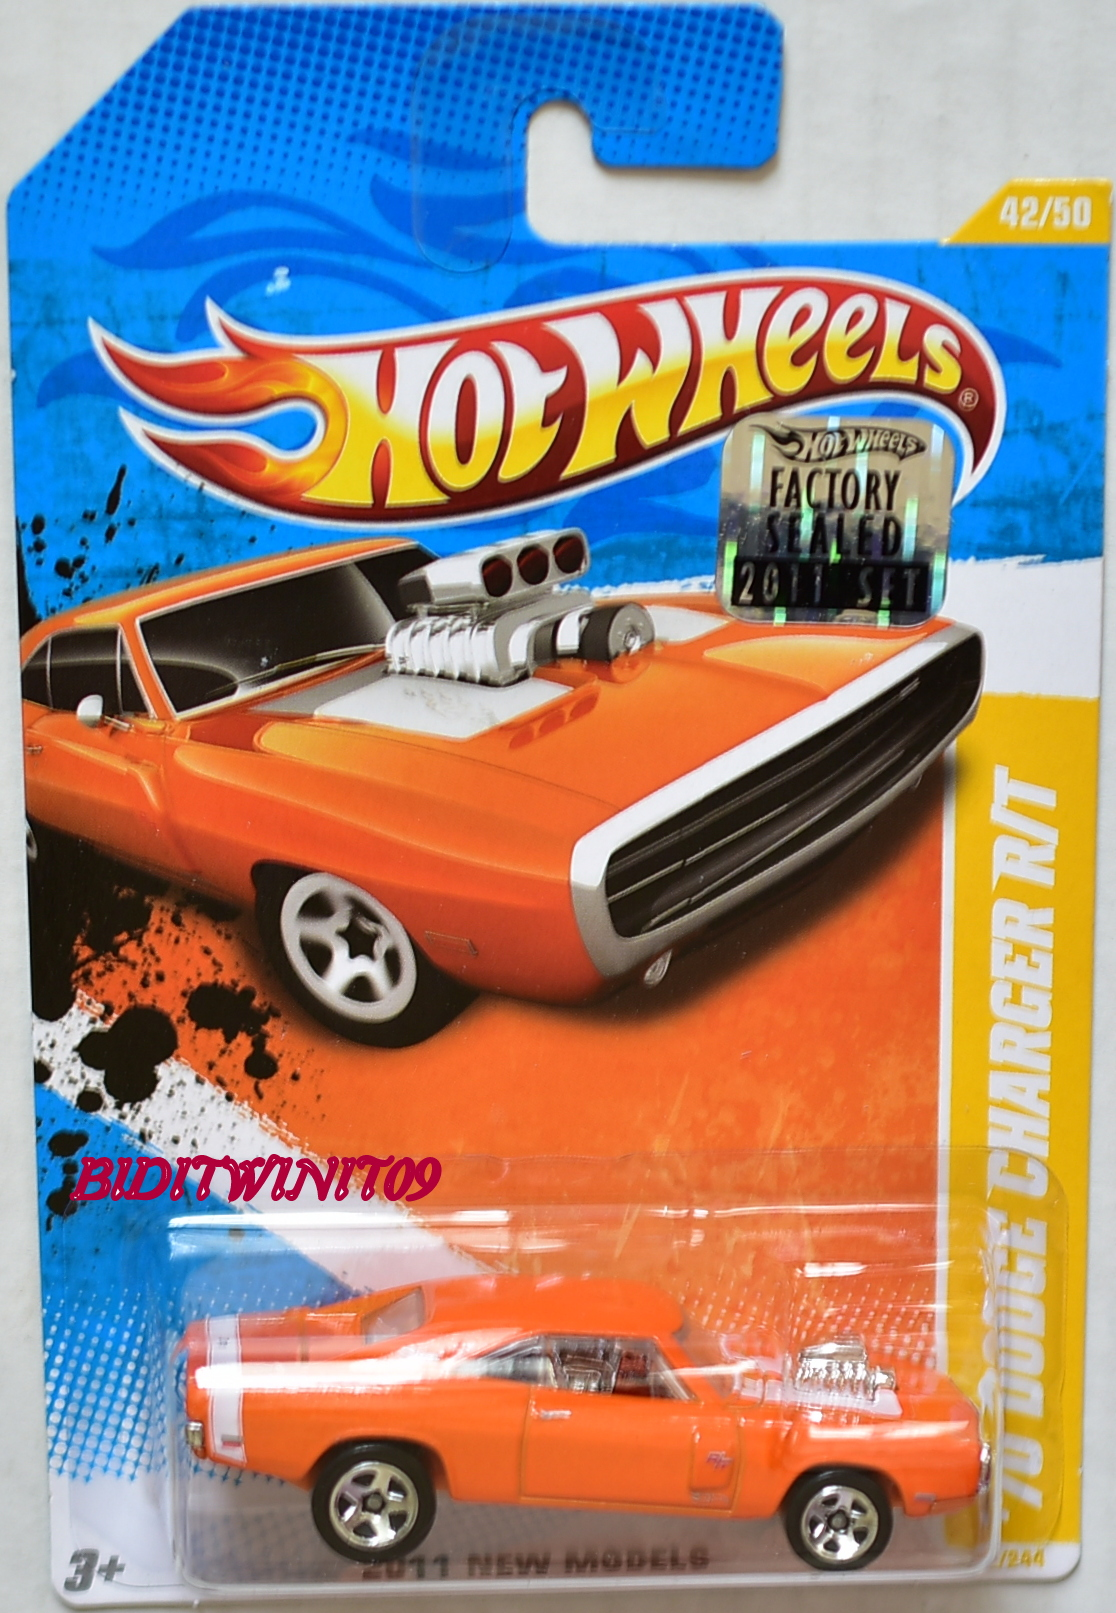 HOT WHEELS 2011 NEW MODELS '70 DODGE CHARGER R/T #42/50 ORANGE FACTORY SEALED